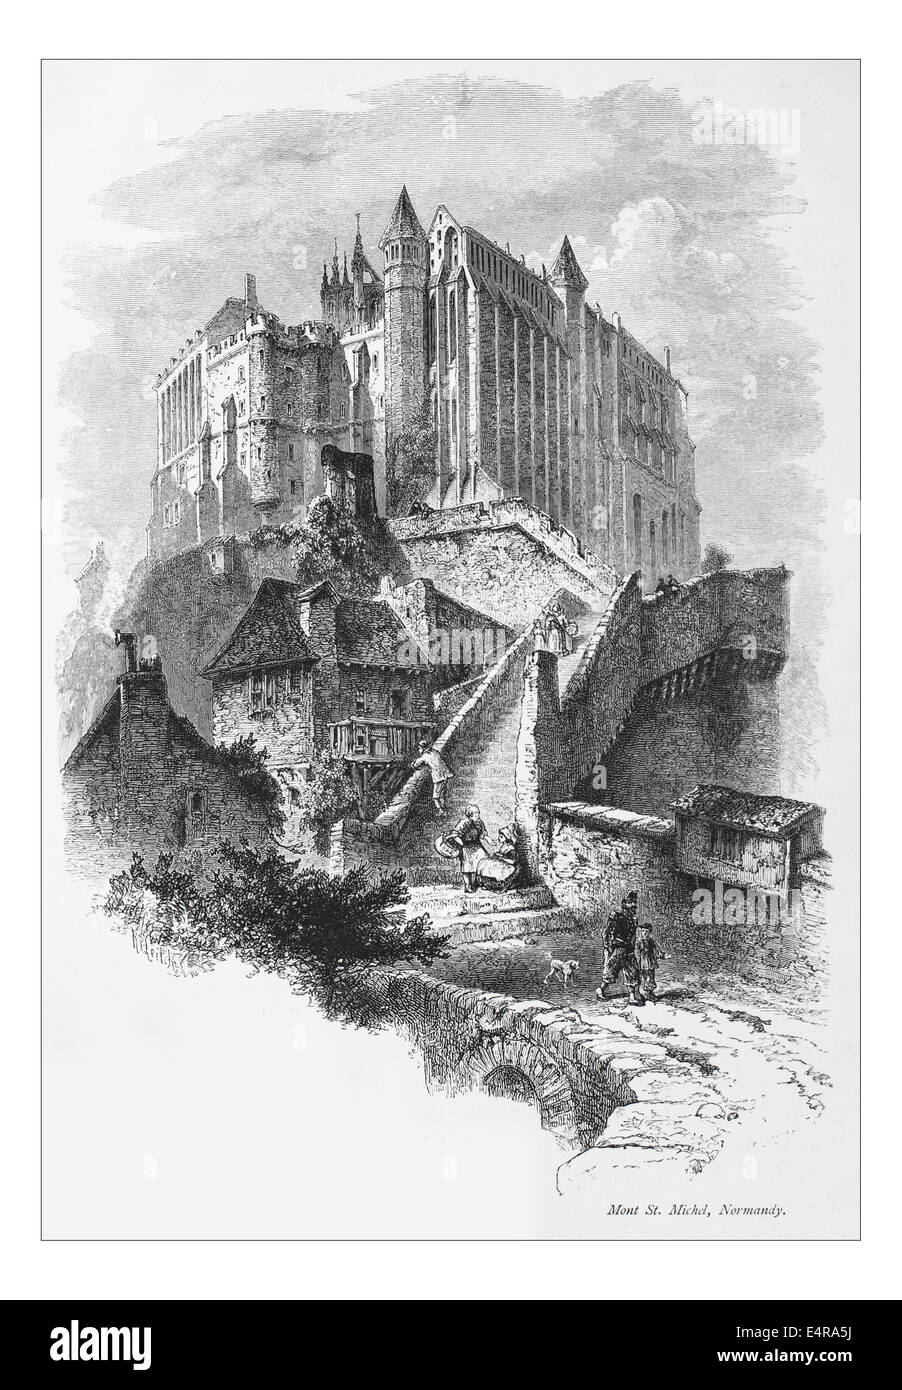 Mont St. Michel, Normandy_Illustration from 'The British isles - Cassell Petter & Galpin Part 8 Picturesque - Stock Image